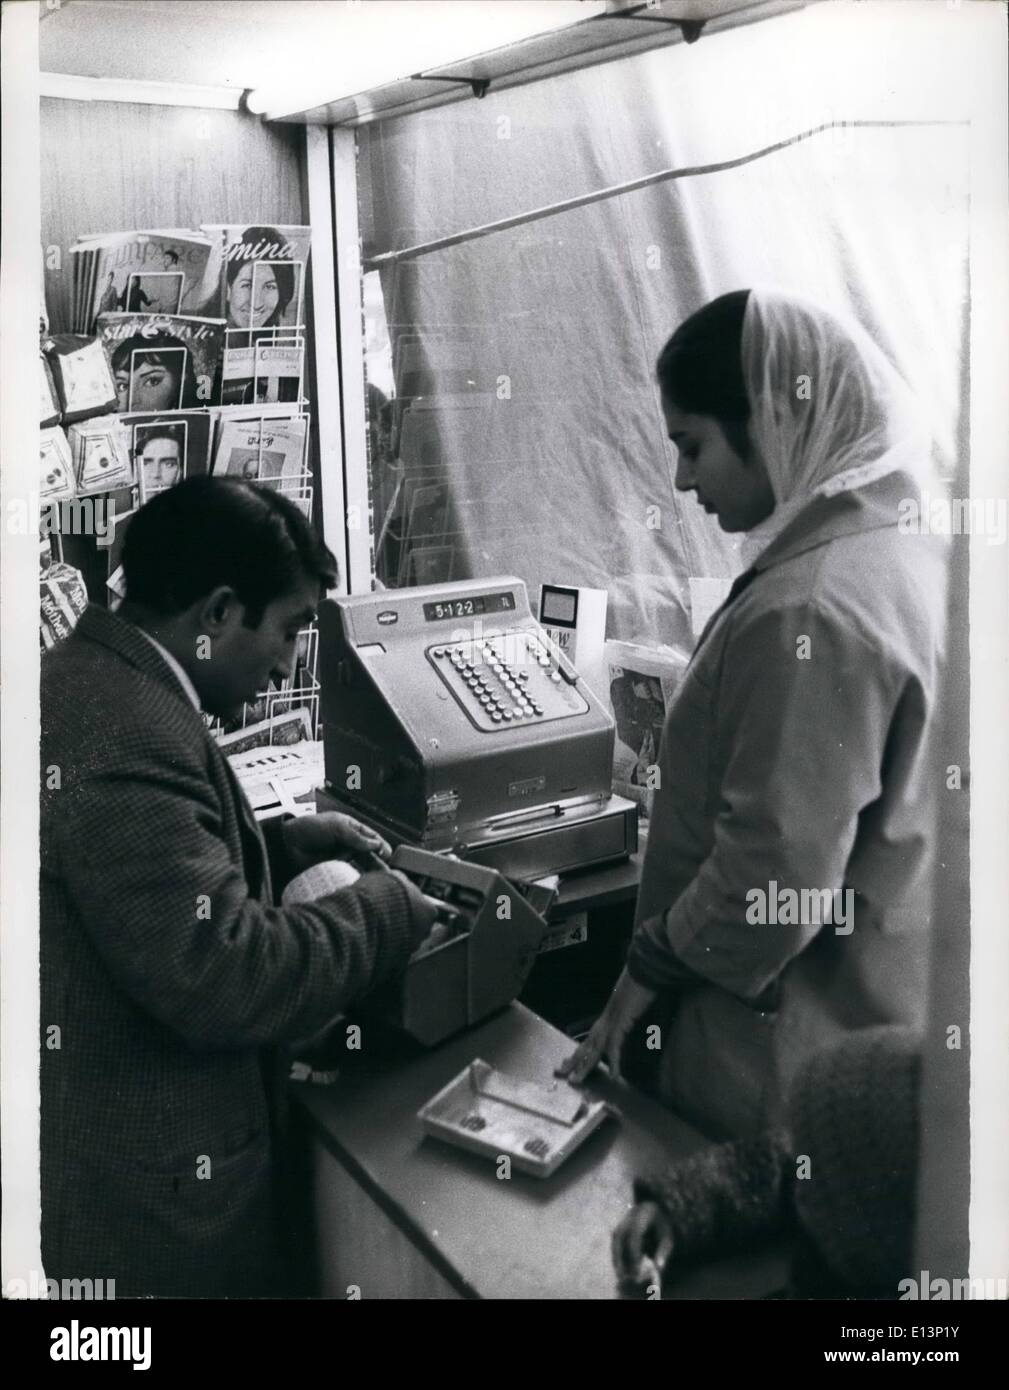 Mar. 22, 2012 - Immigrant in Southall both working & living - Stock Image